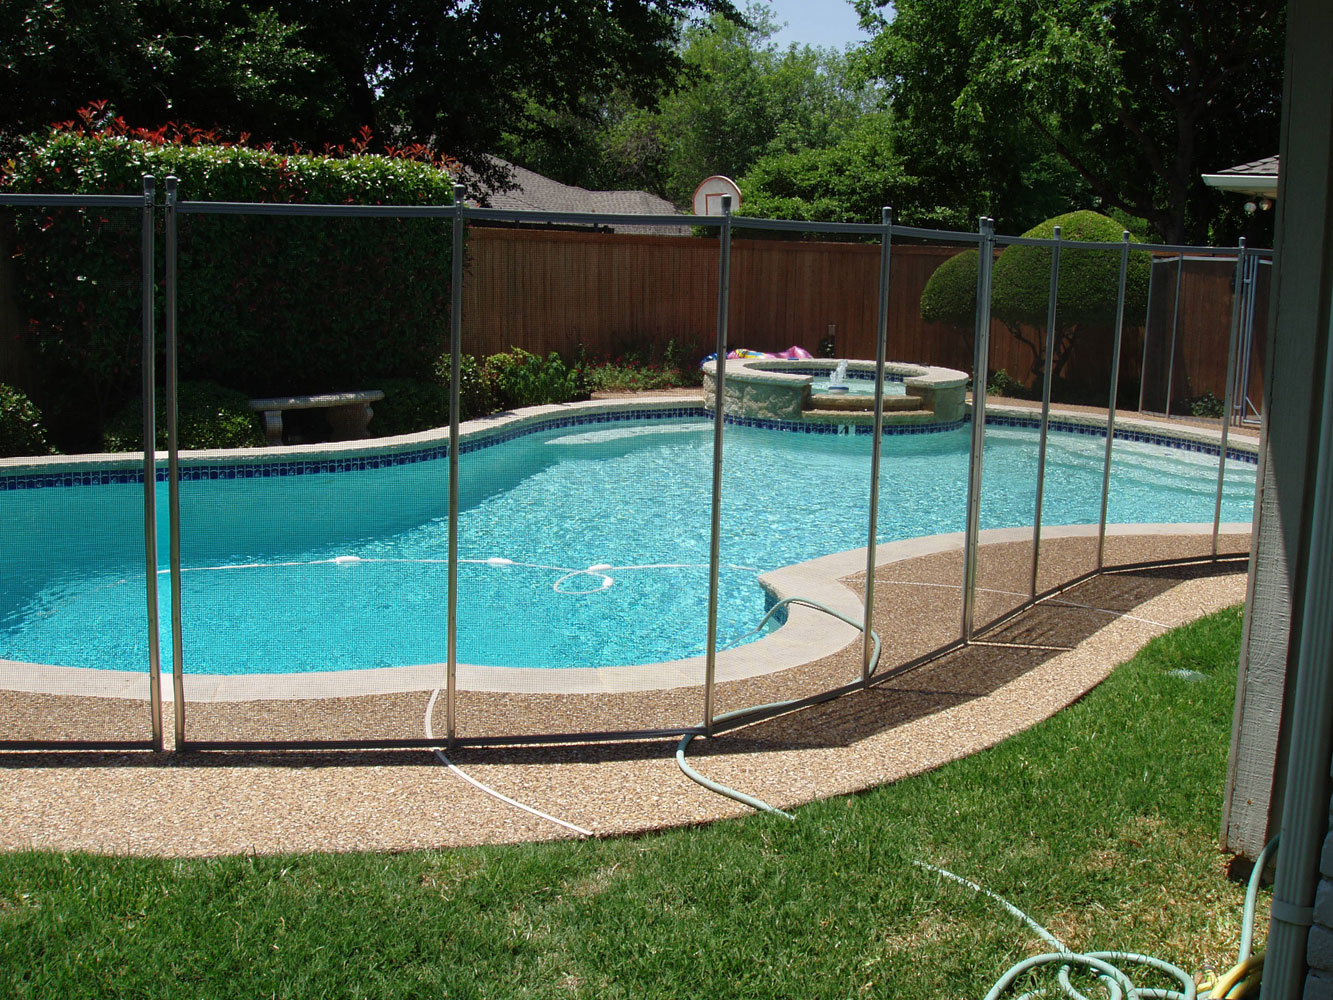 How to clean pool fencing